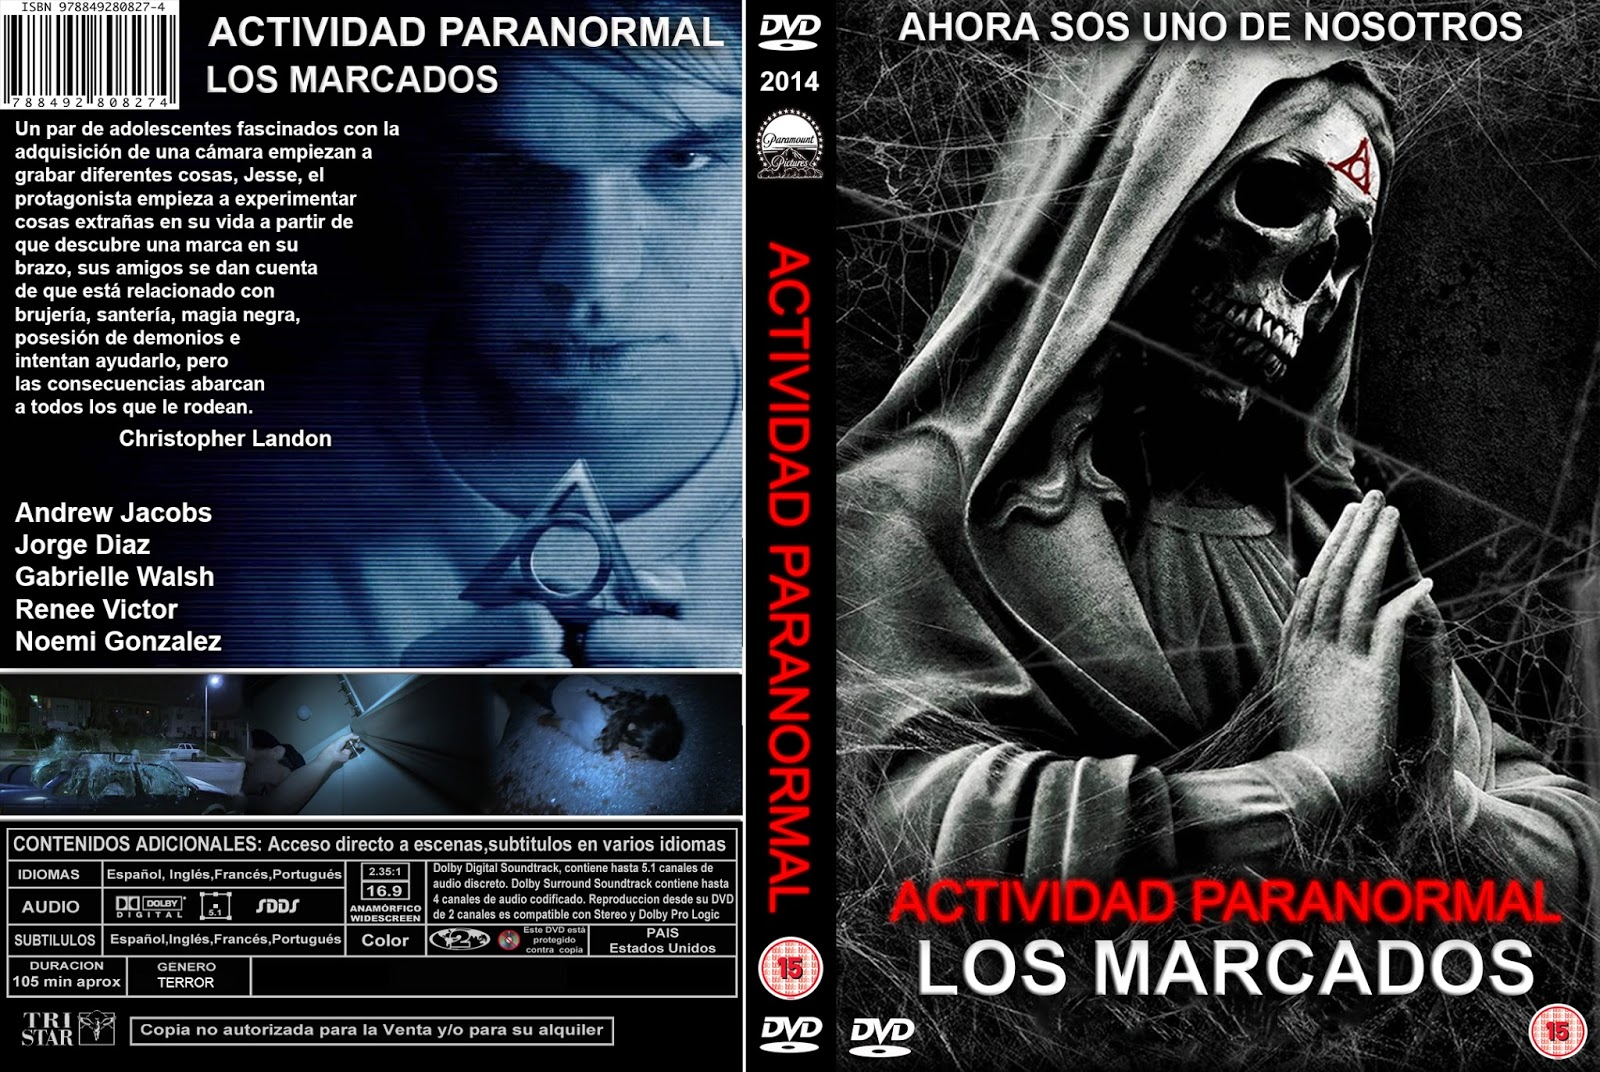 paranormal activity marked ones dvd cover - photo #3